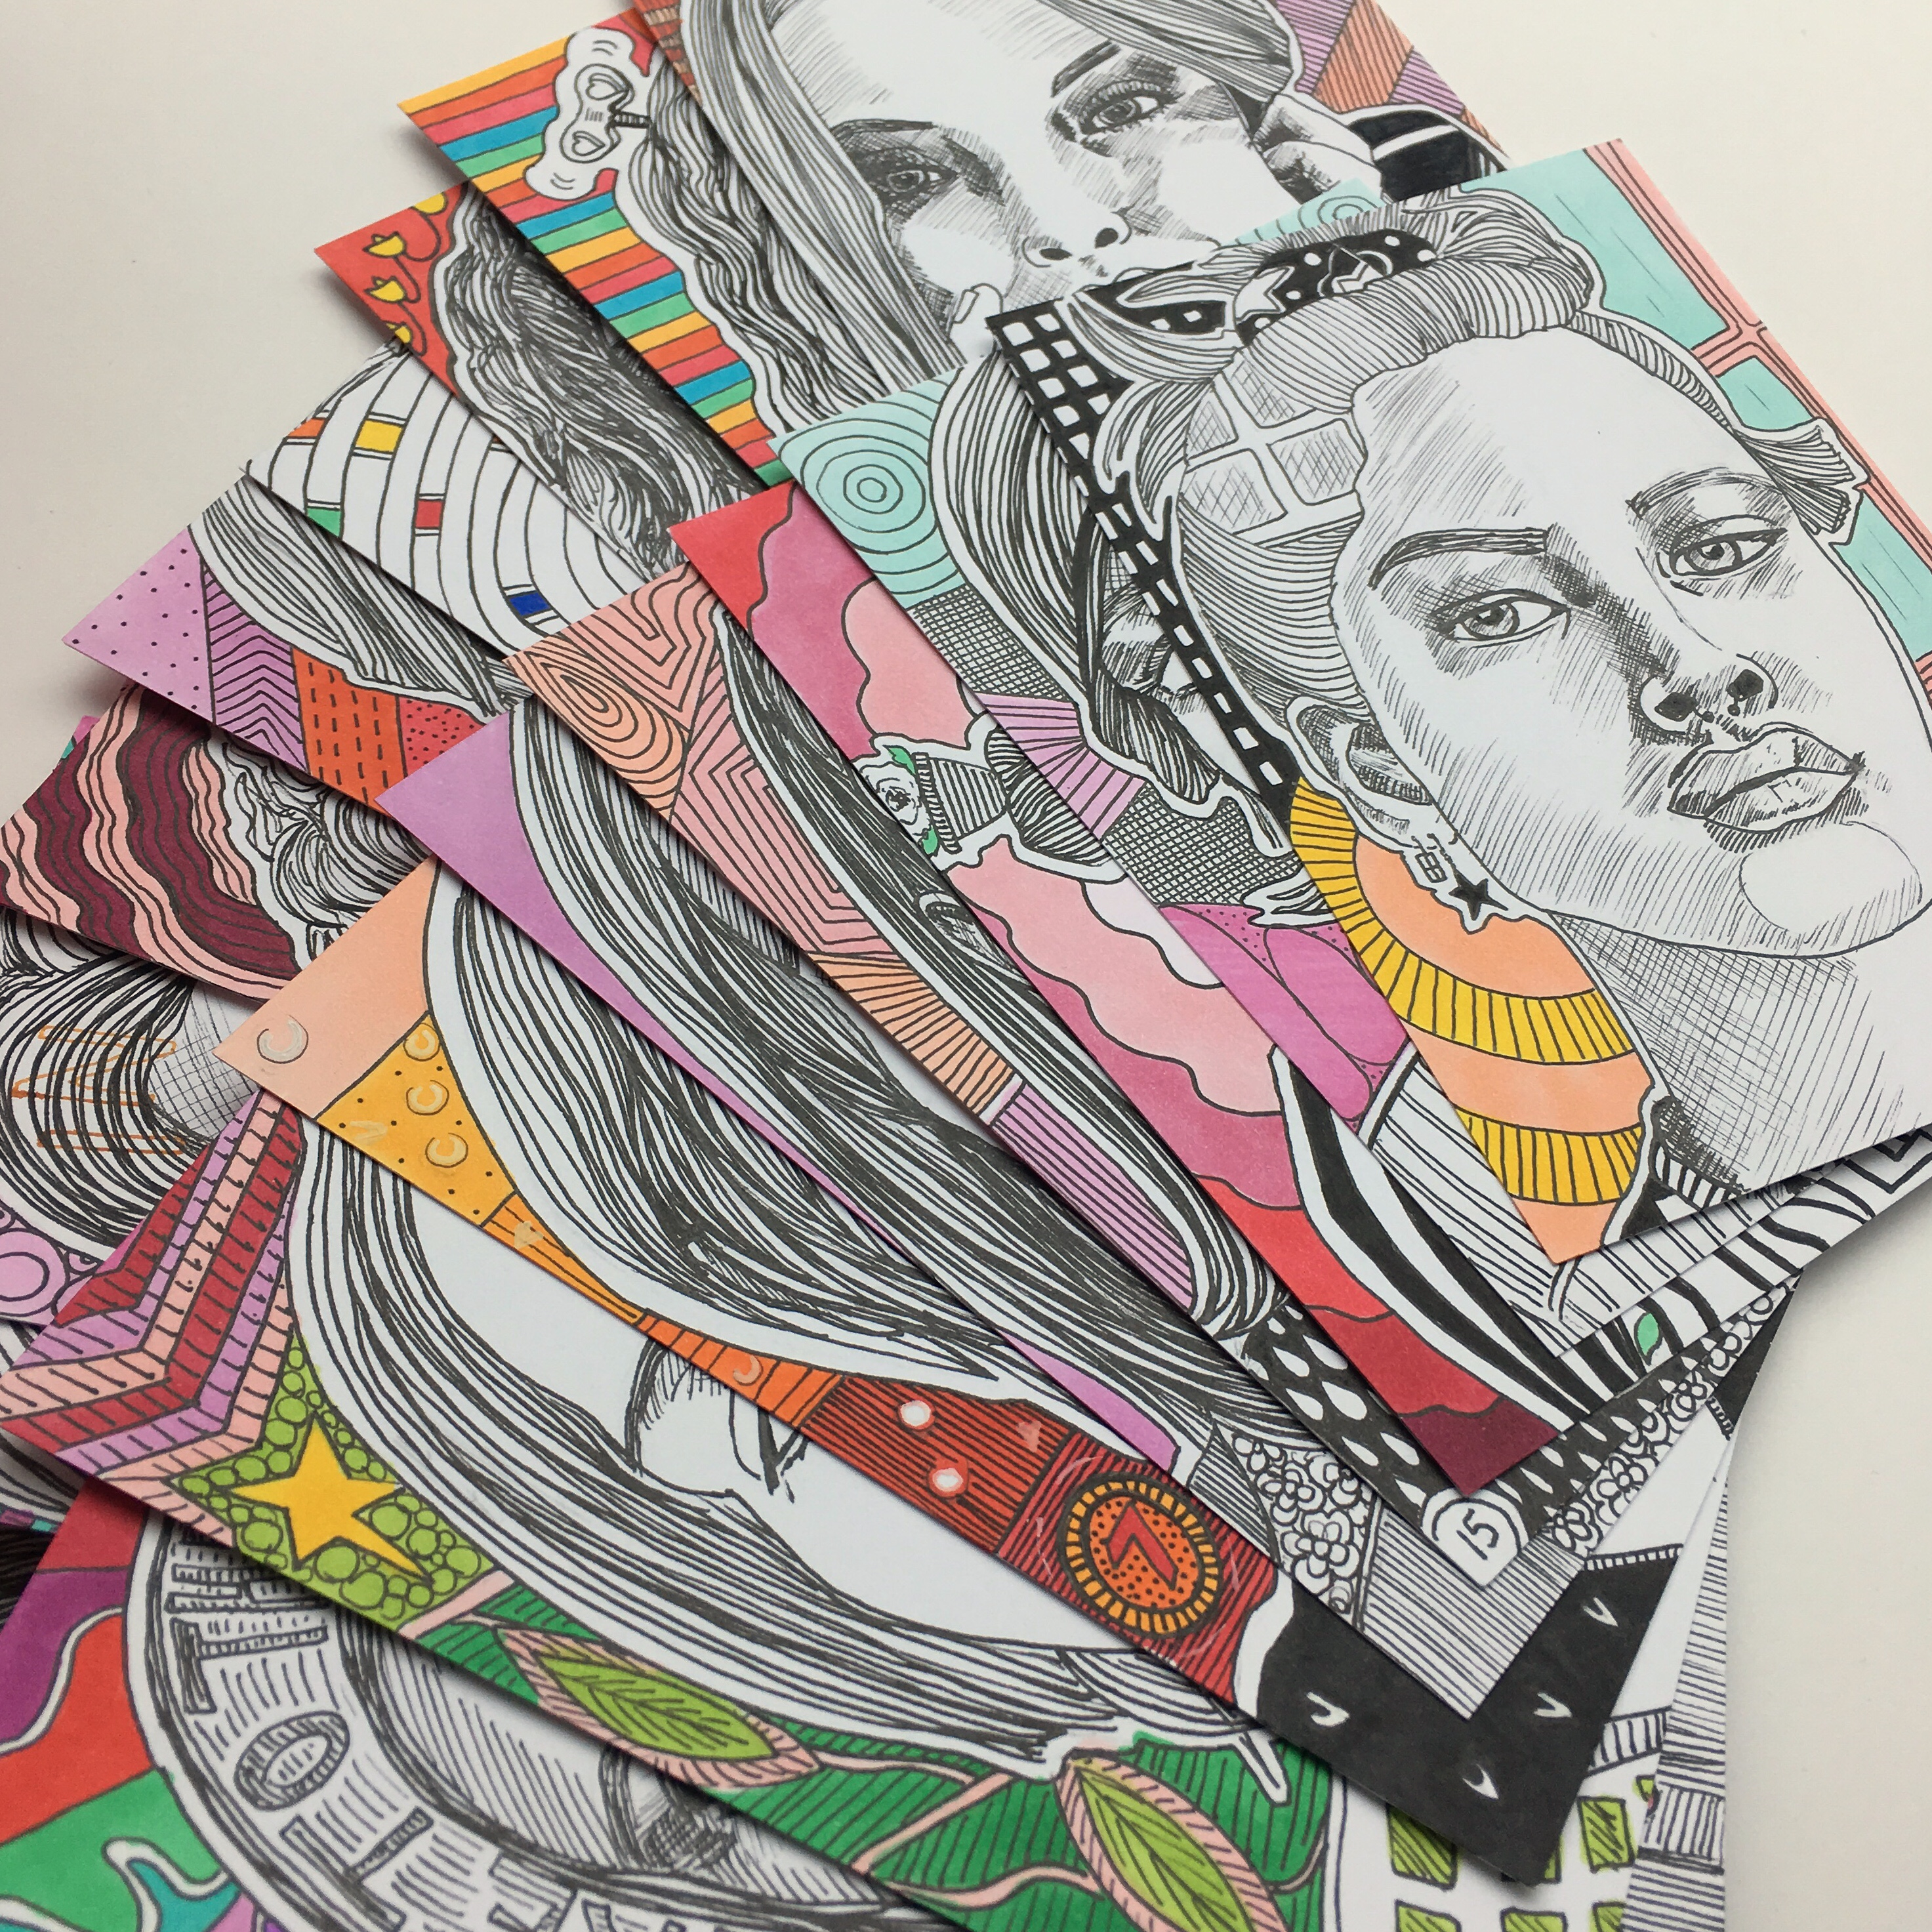 Stack of ICAD 2019